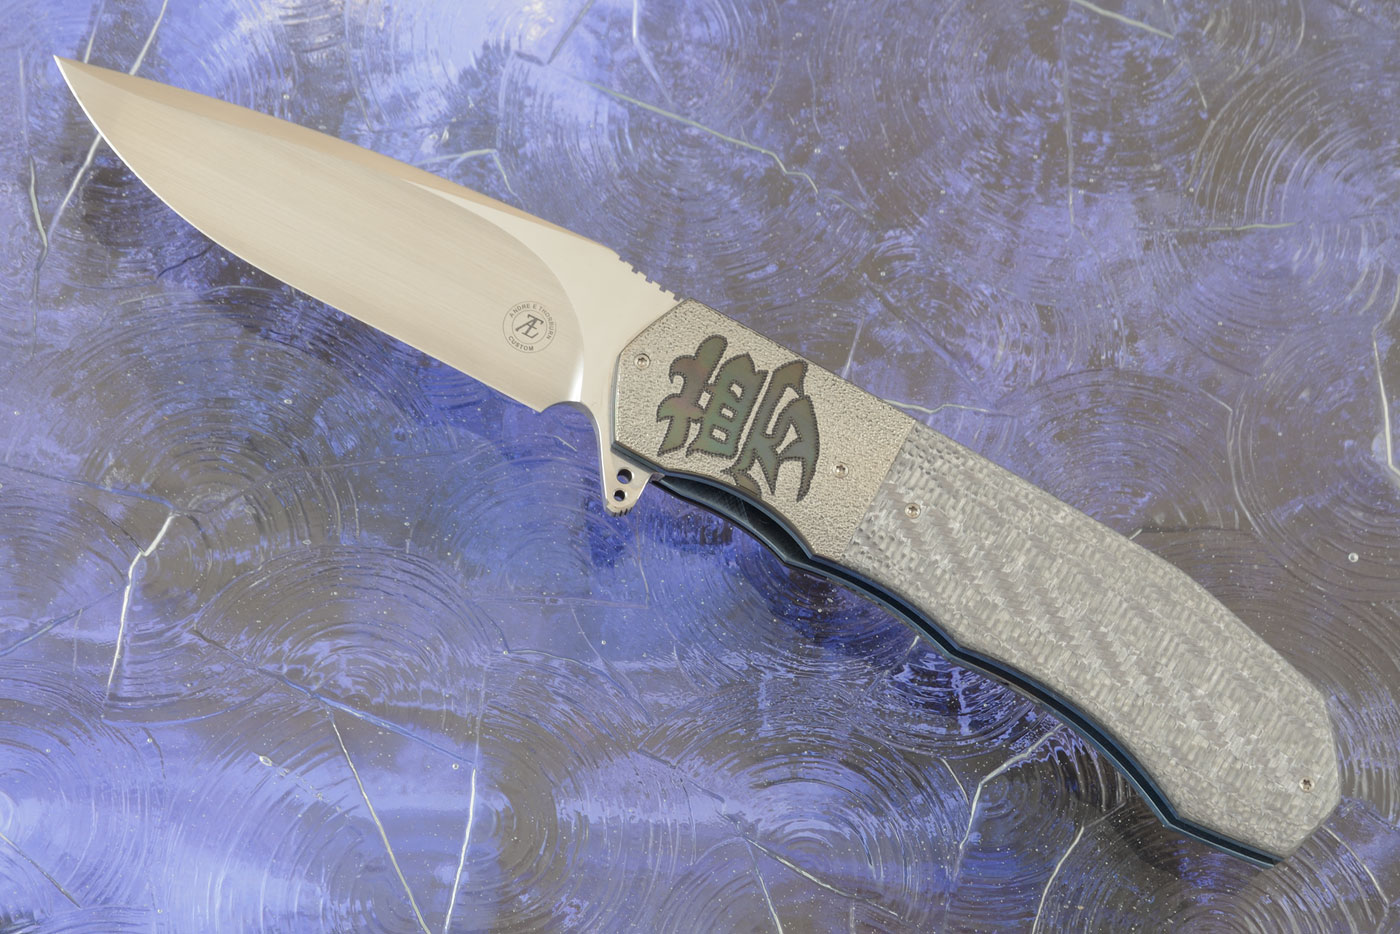 L44M Flipper with Silver Twill and Zirconium (Ceramic IKBS)